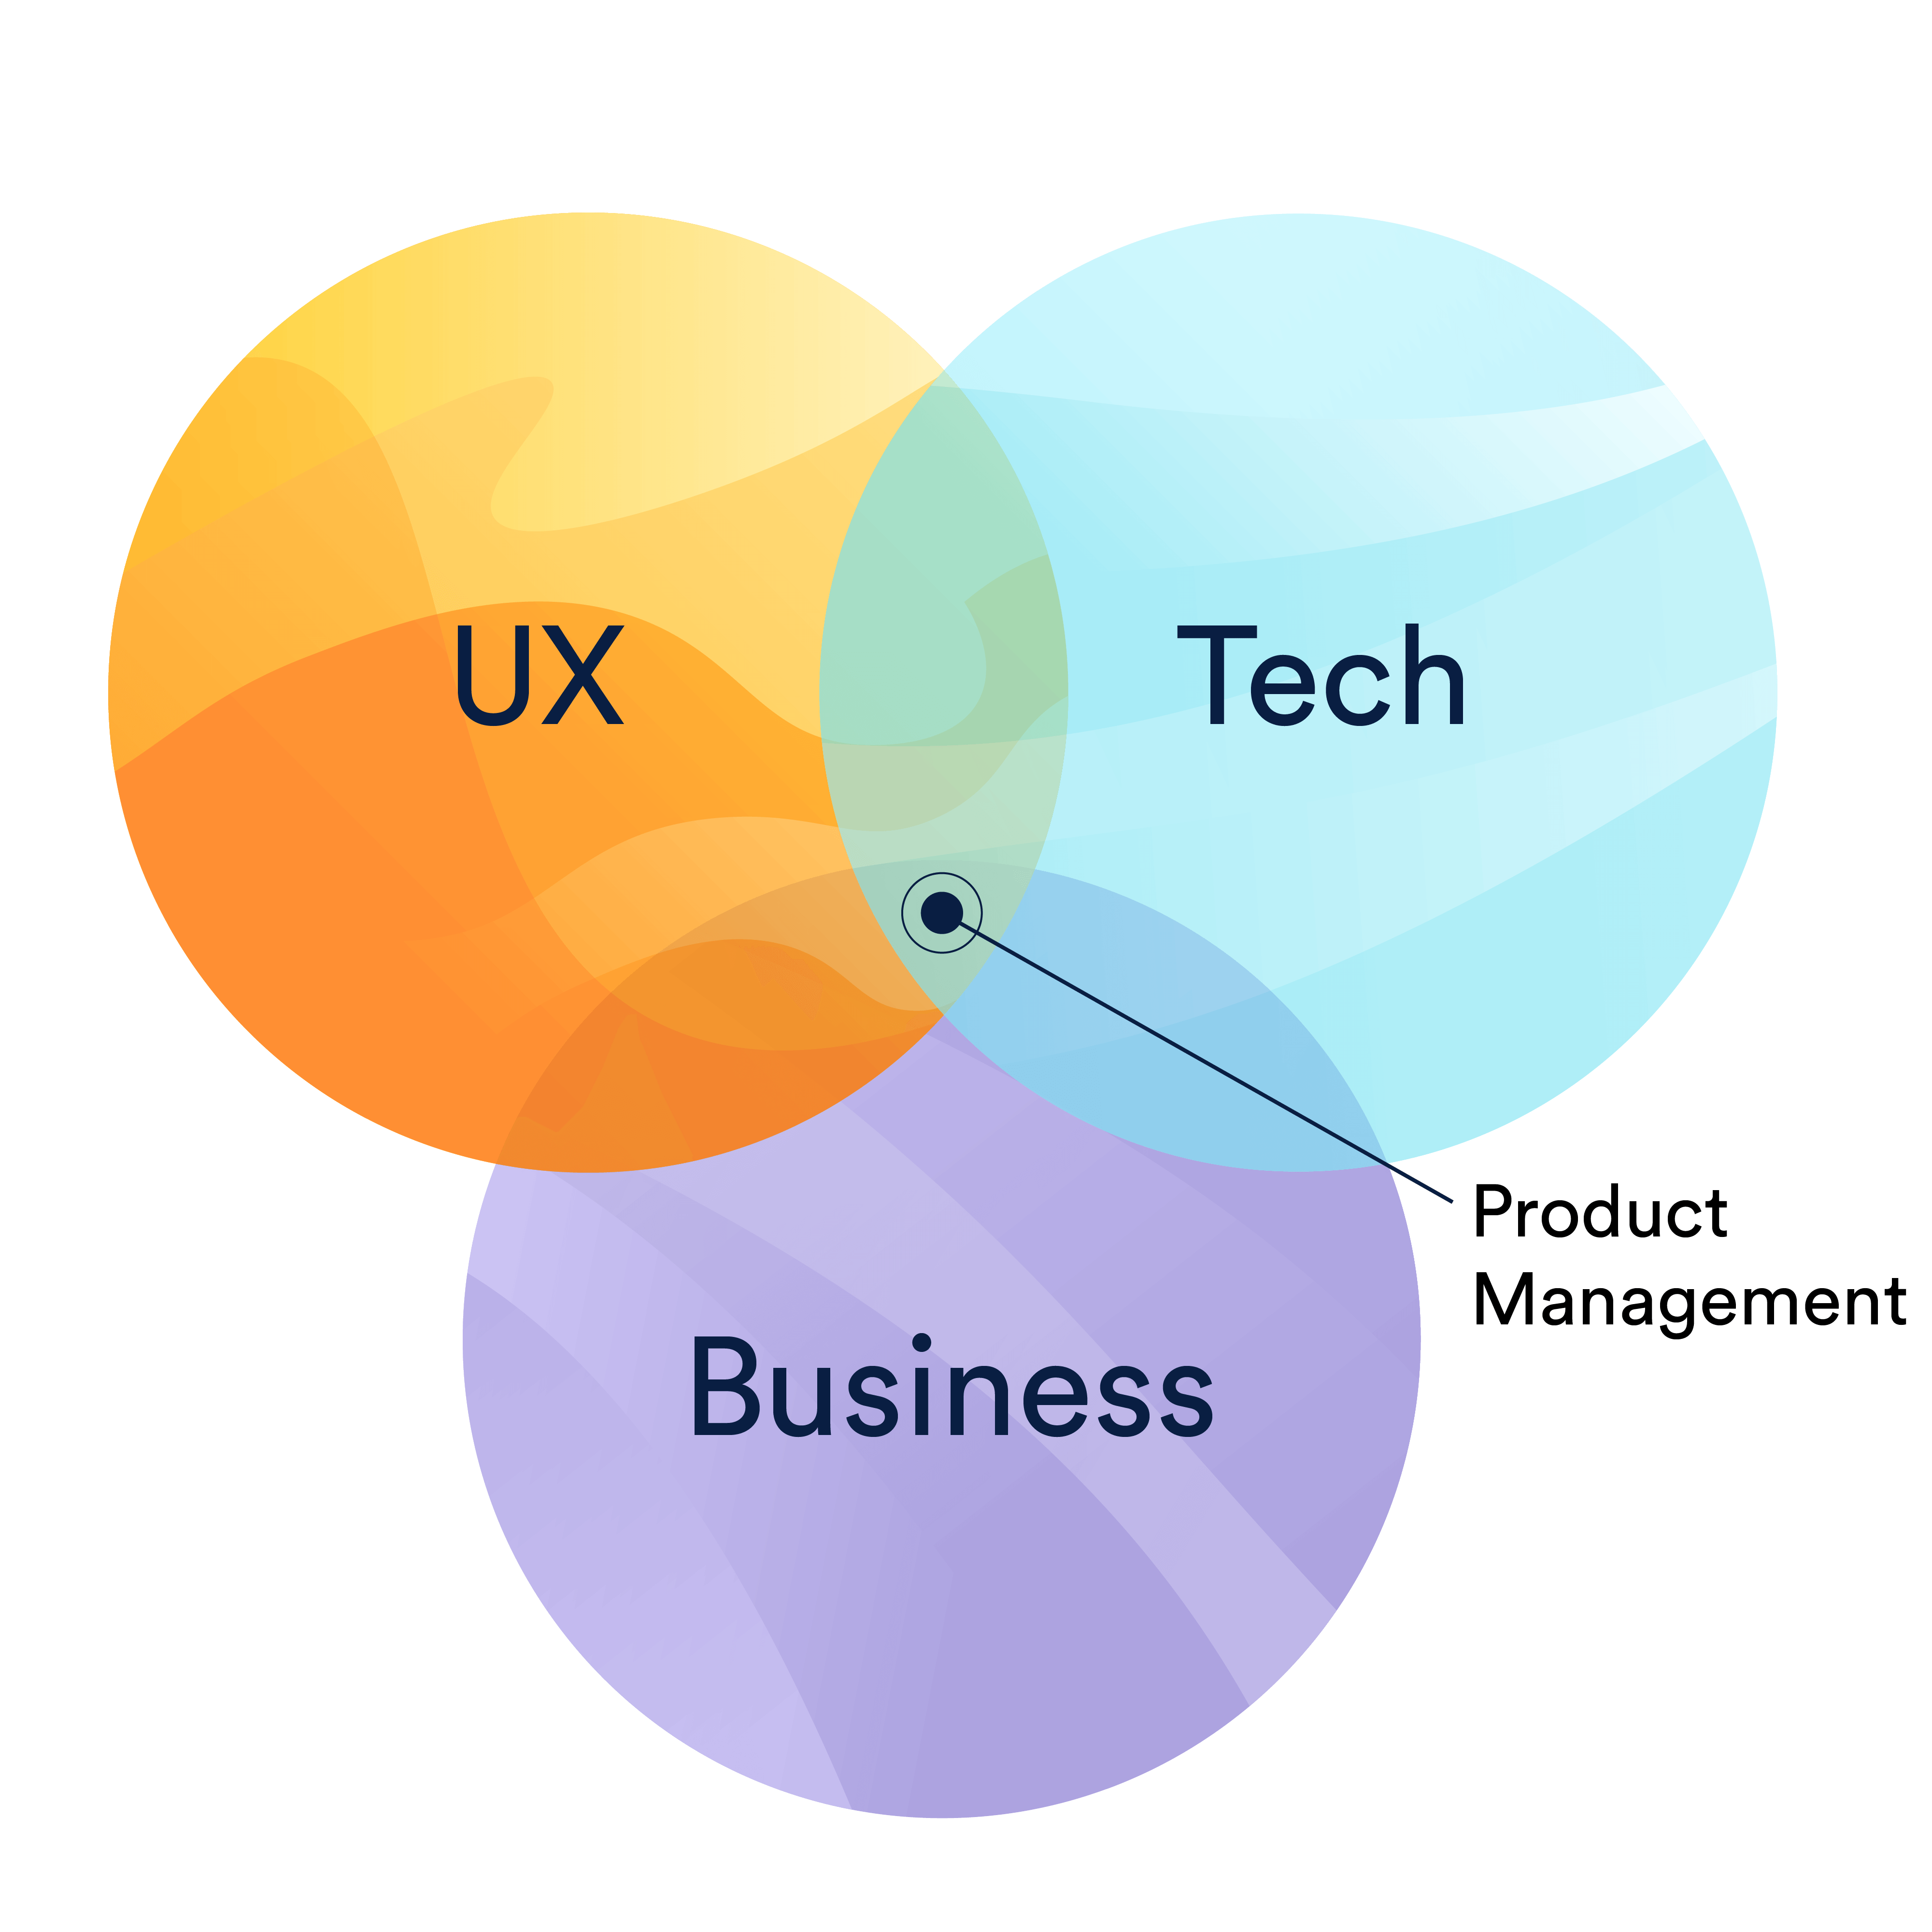 UX, Tech, and Business diagram